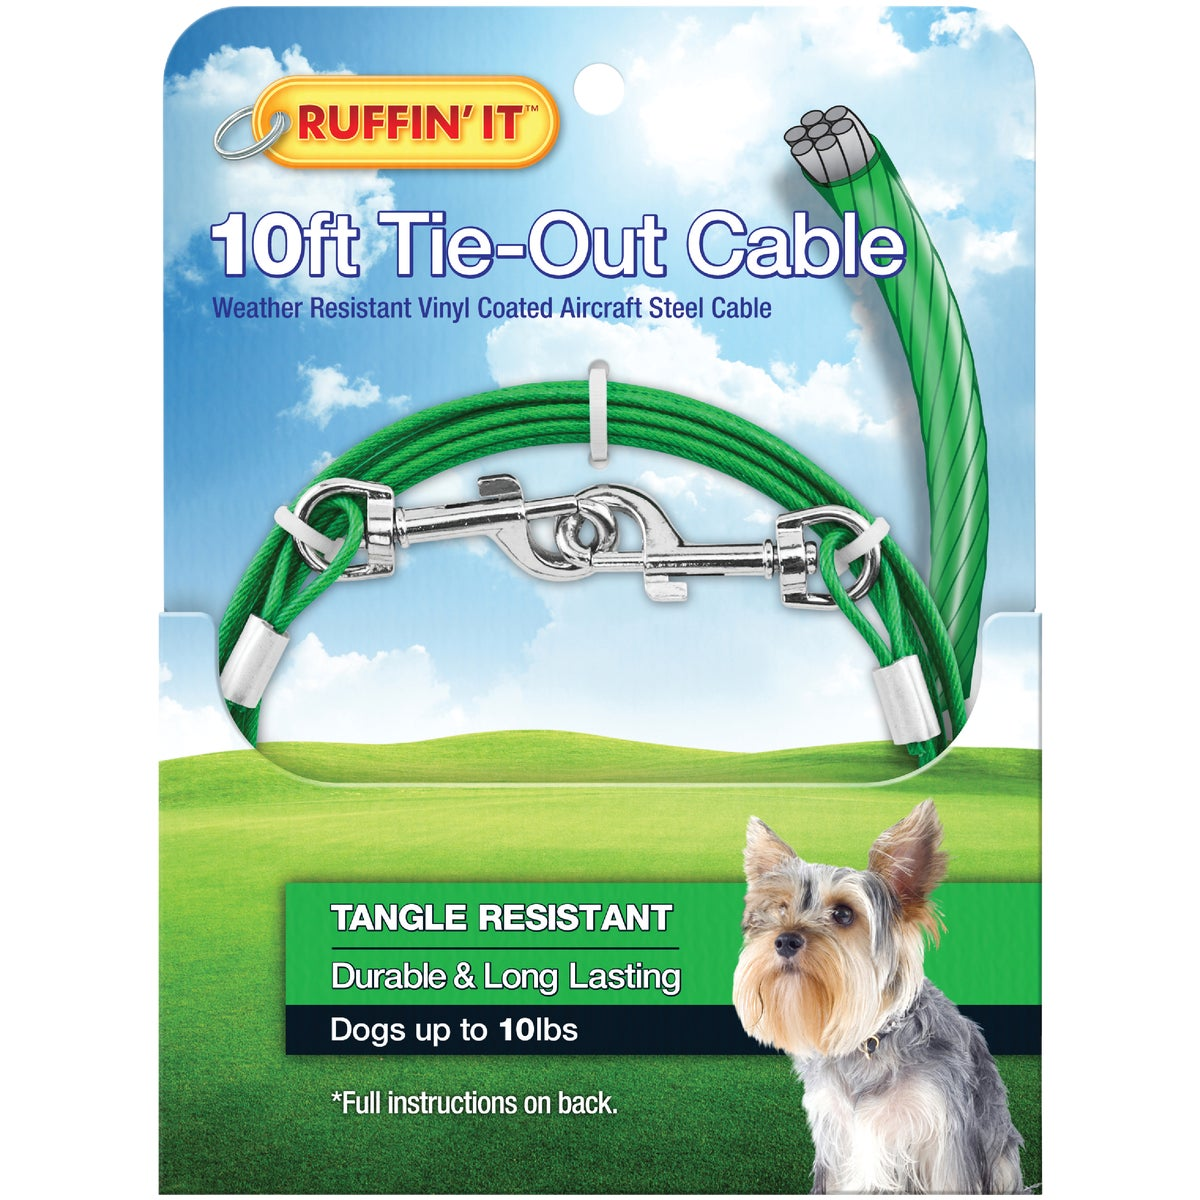 10' TIE-OUT CABLE - 29010 by Westminster Pet